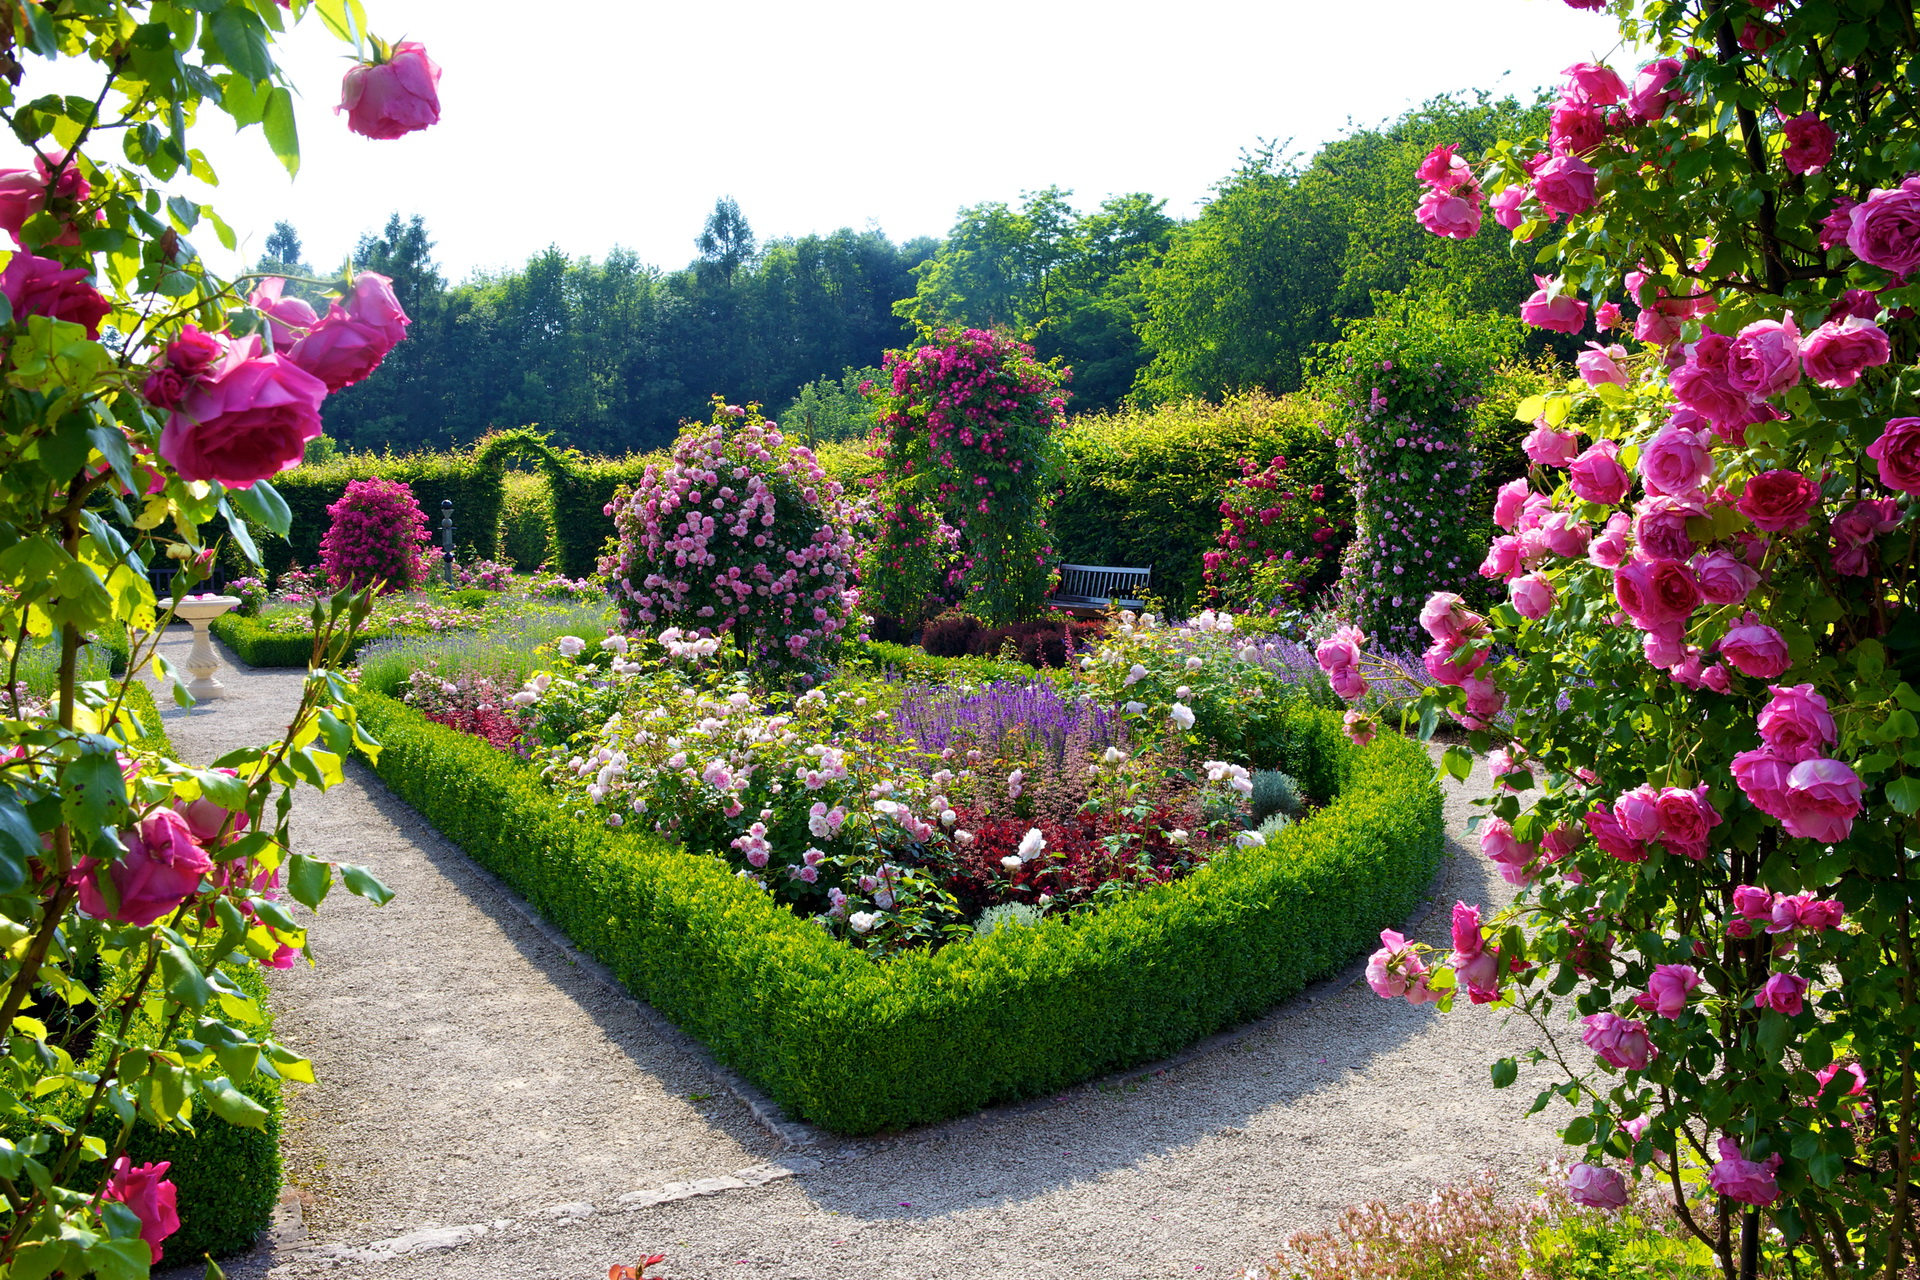 flower garden wallpapers best wallpapers picswalls